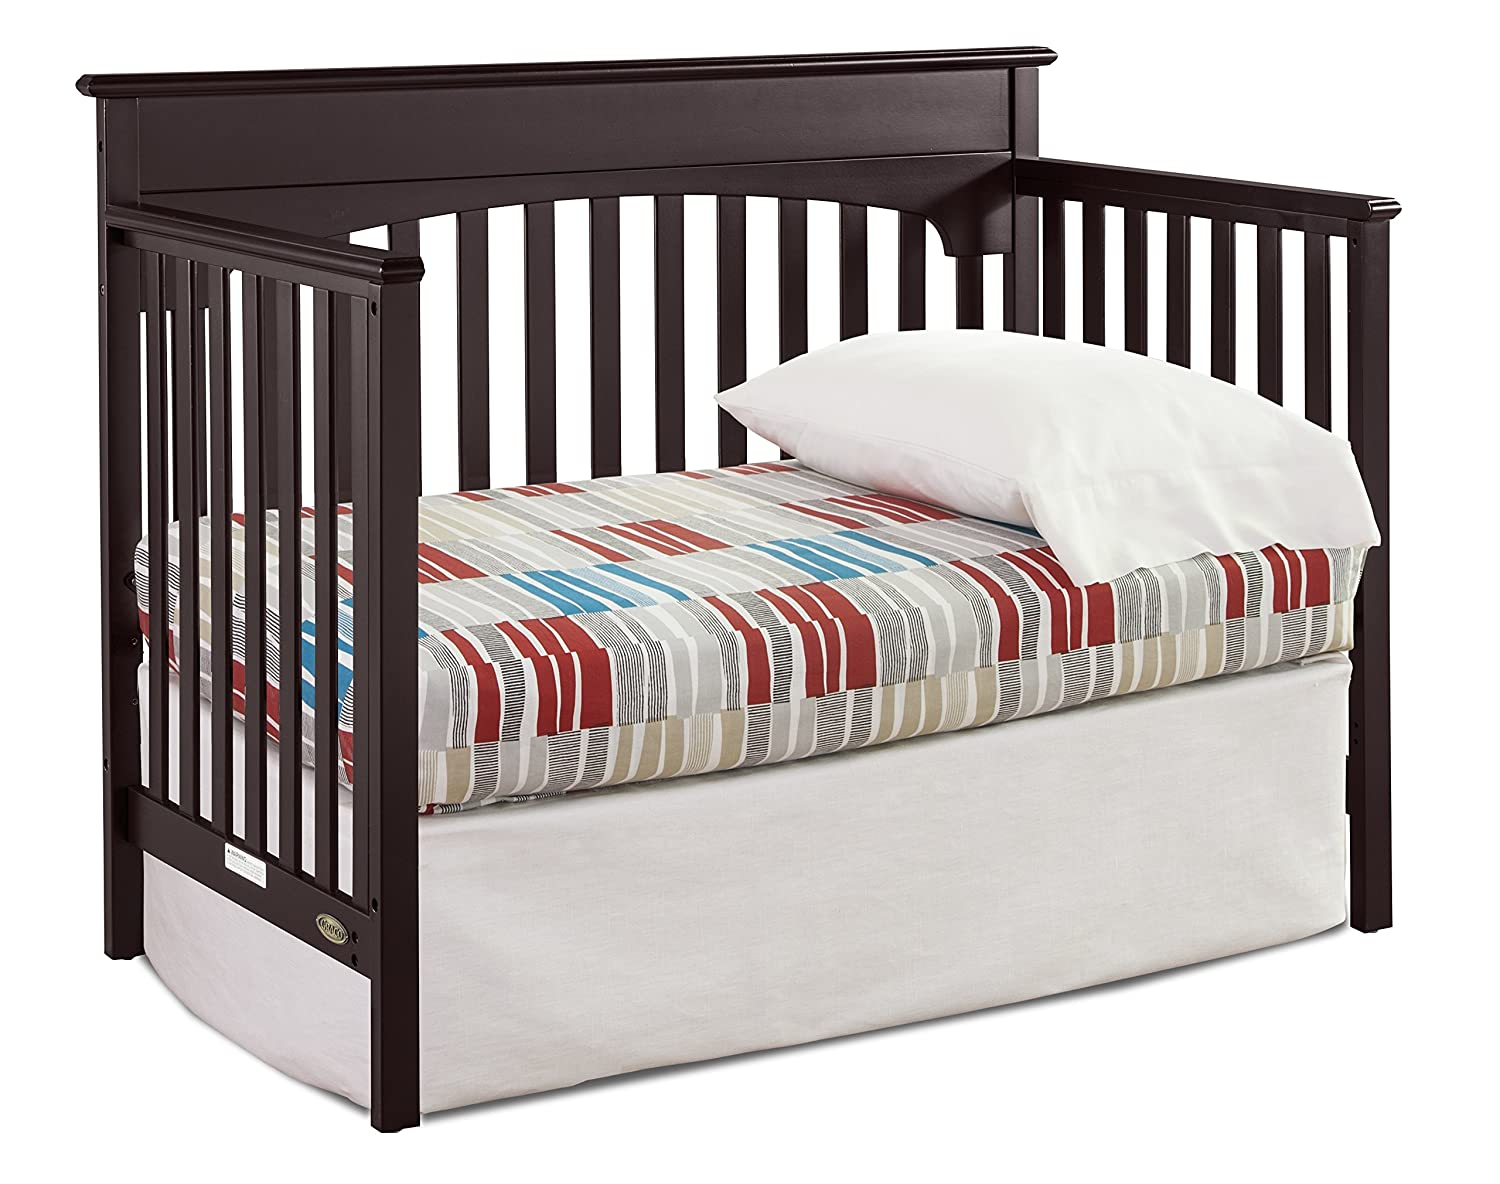 changer mattresses baby graco in convertible and product categories cribs benton gracobentoncribchanger crib